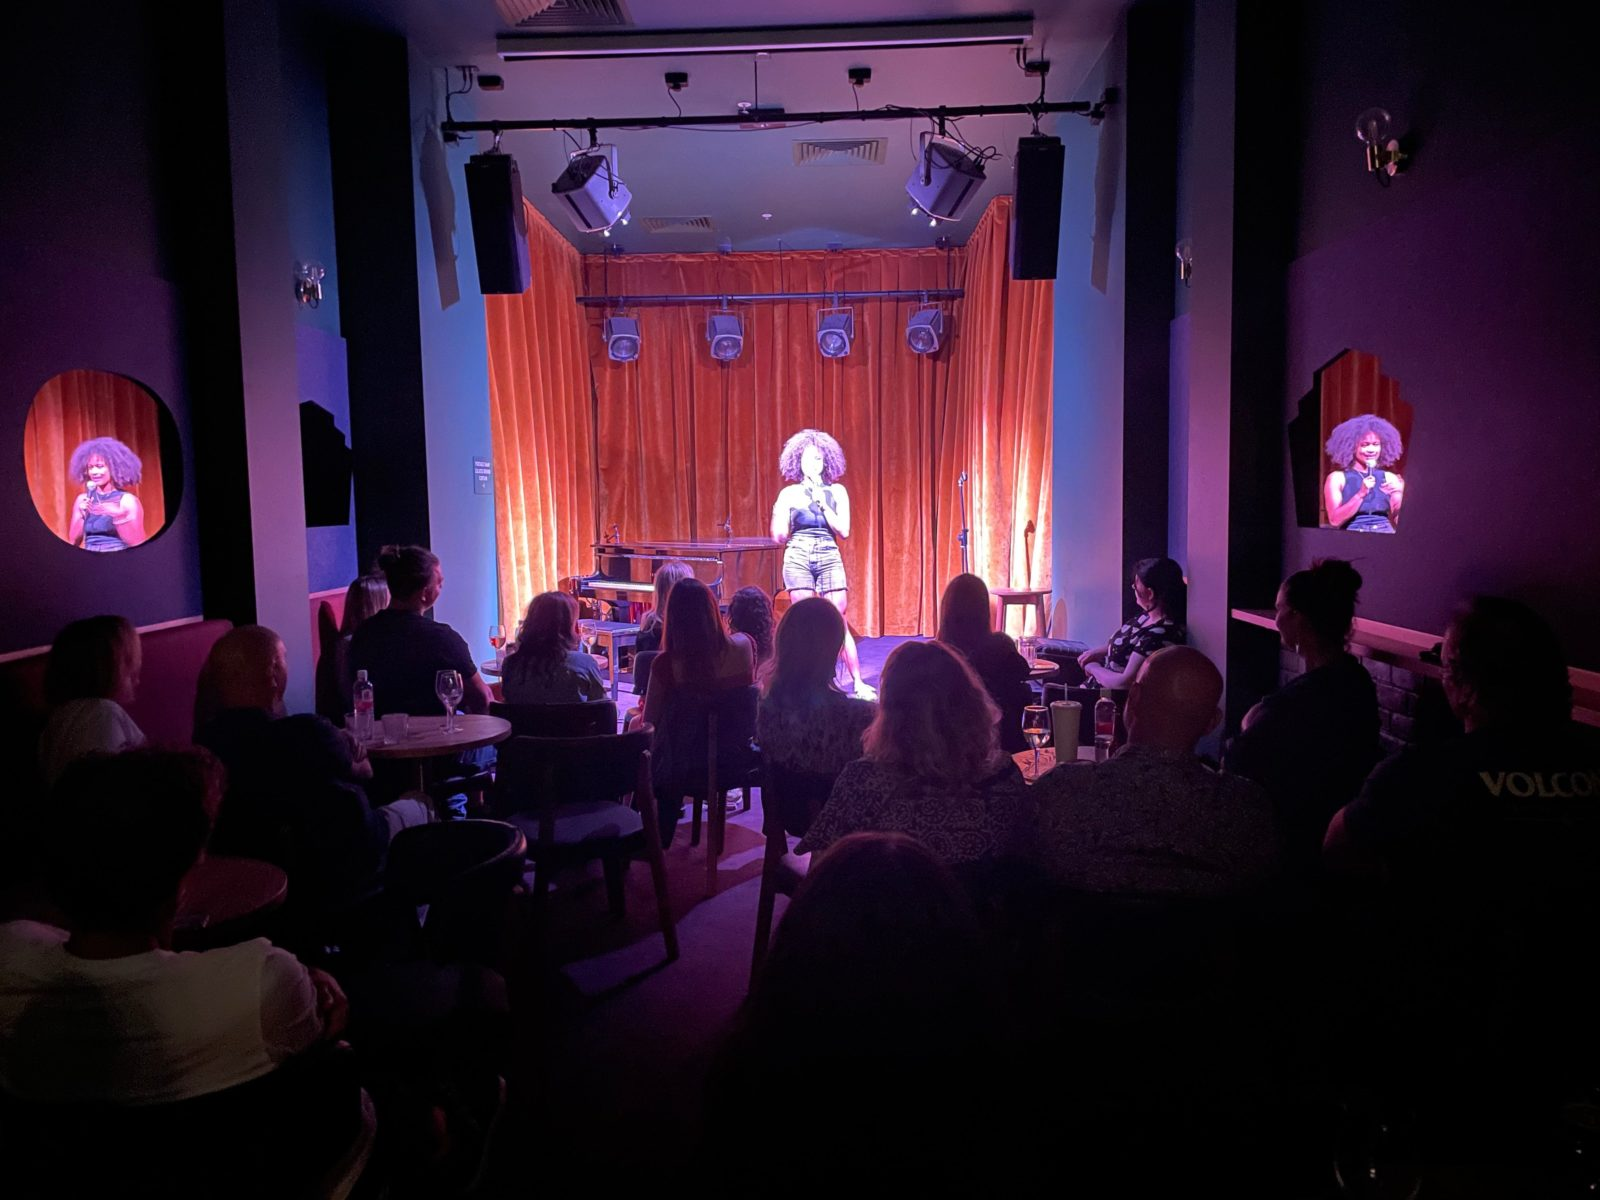 A photo of a women performing stand up comedy to a full house